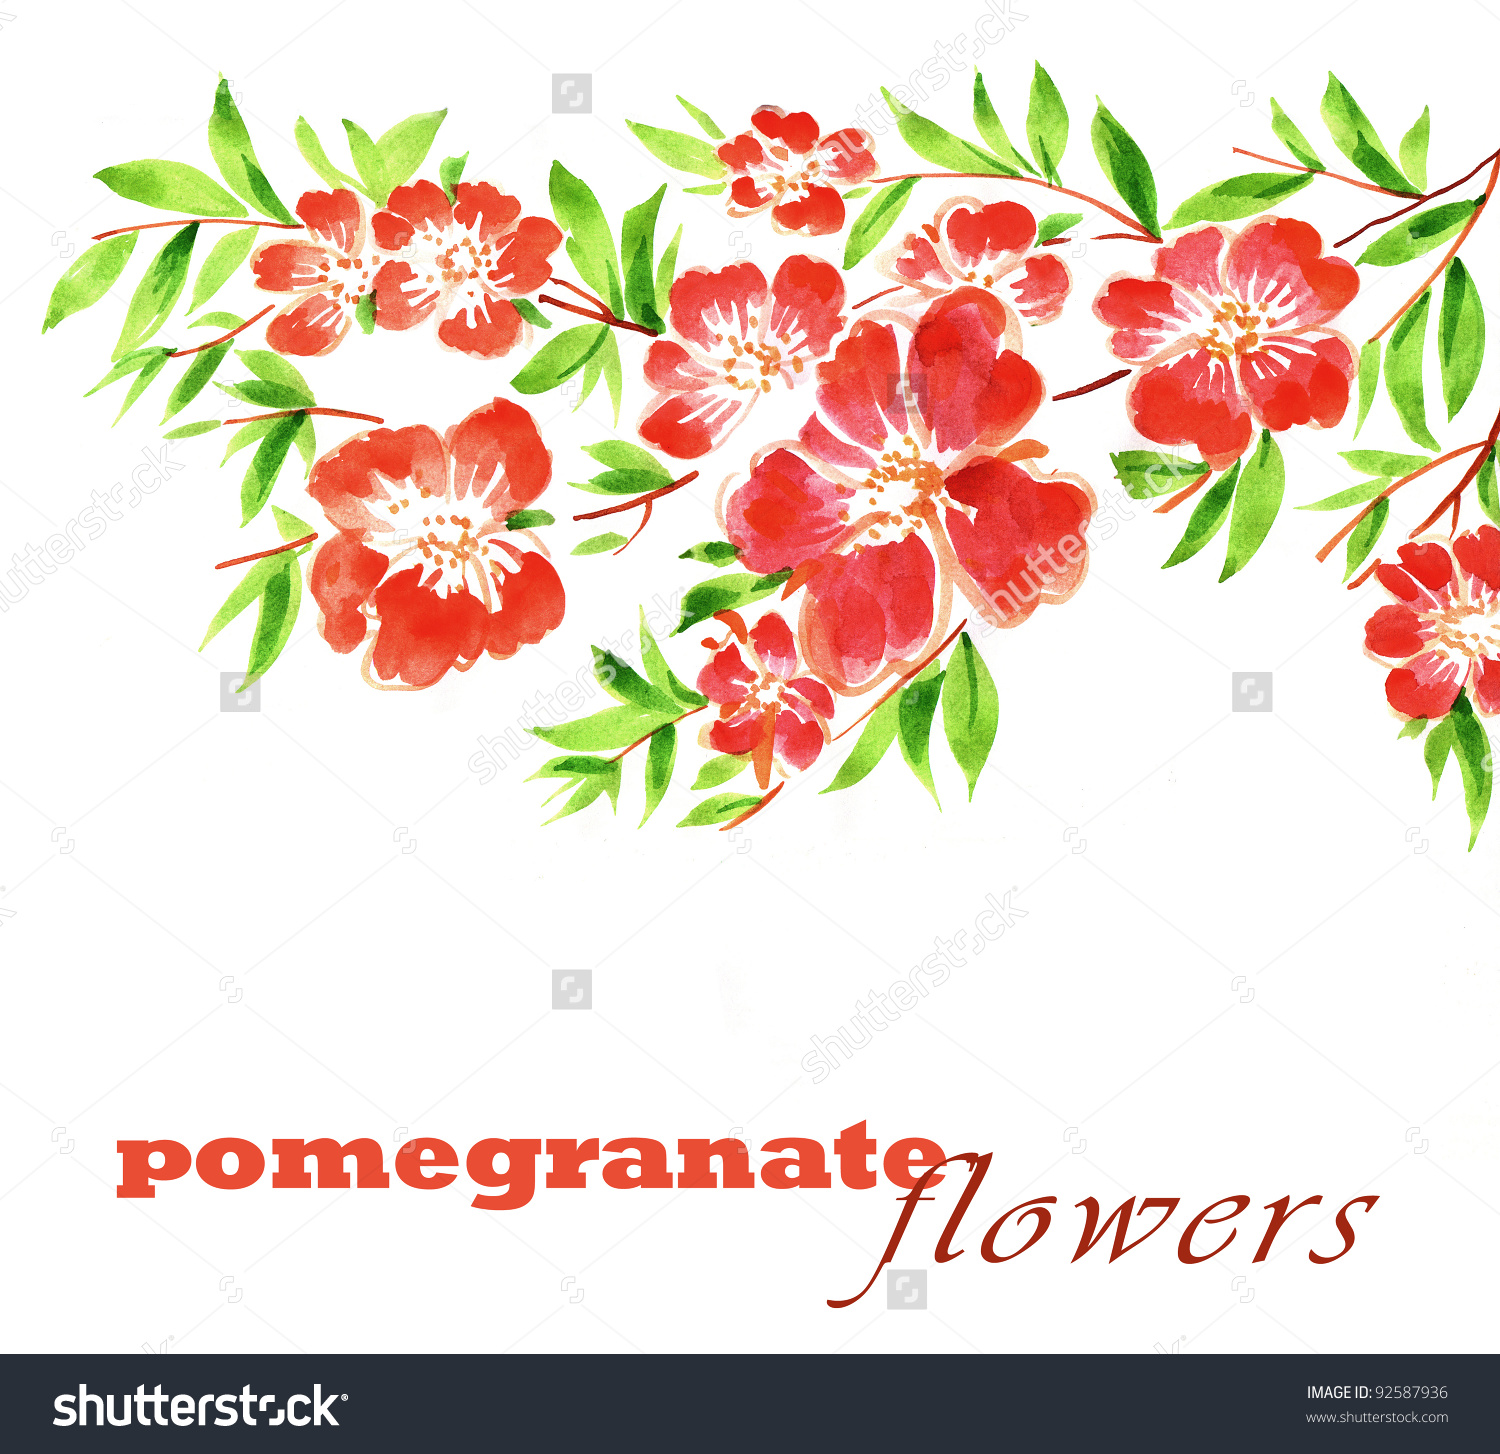 Hand Painted Illustration Pomegranate Flowers Stock Illustration.